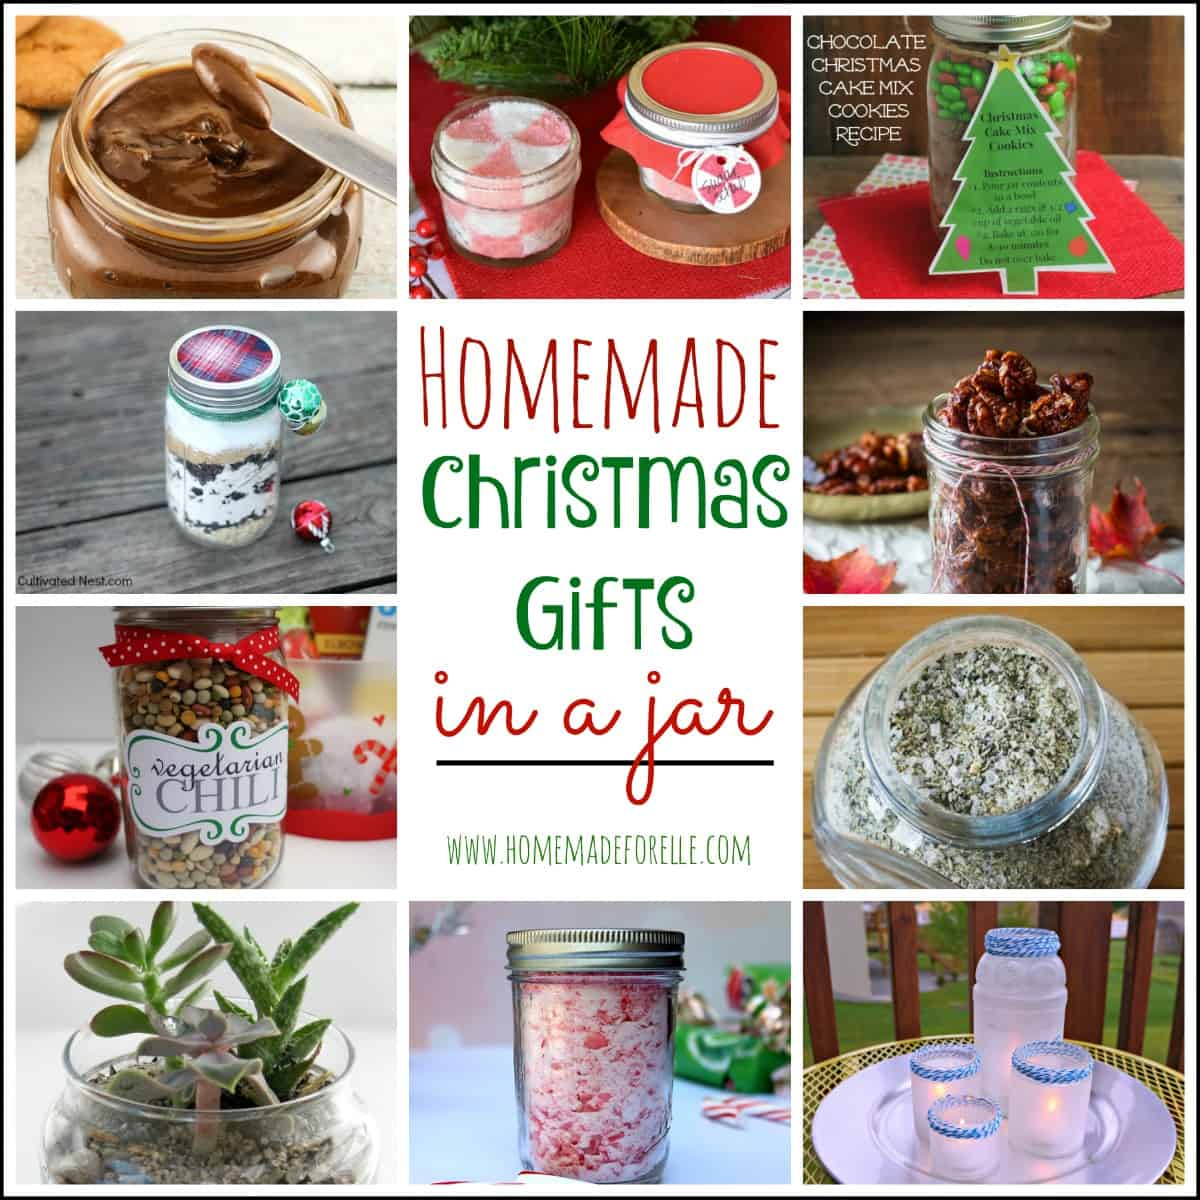 22 Homemade Christmas Gifts in a Jar